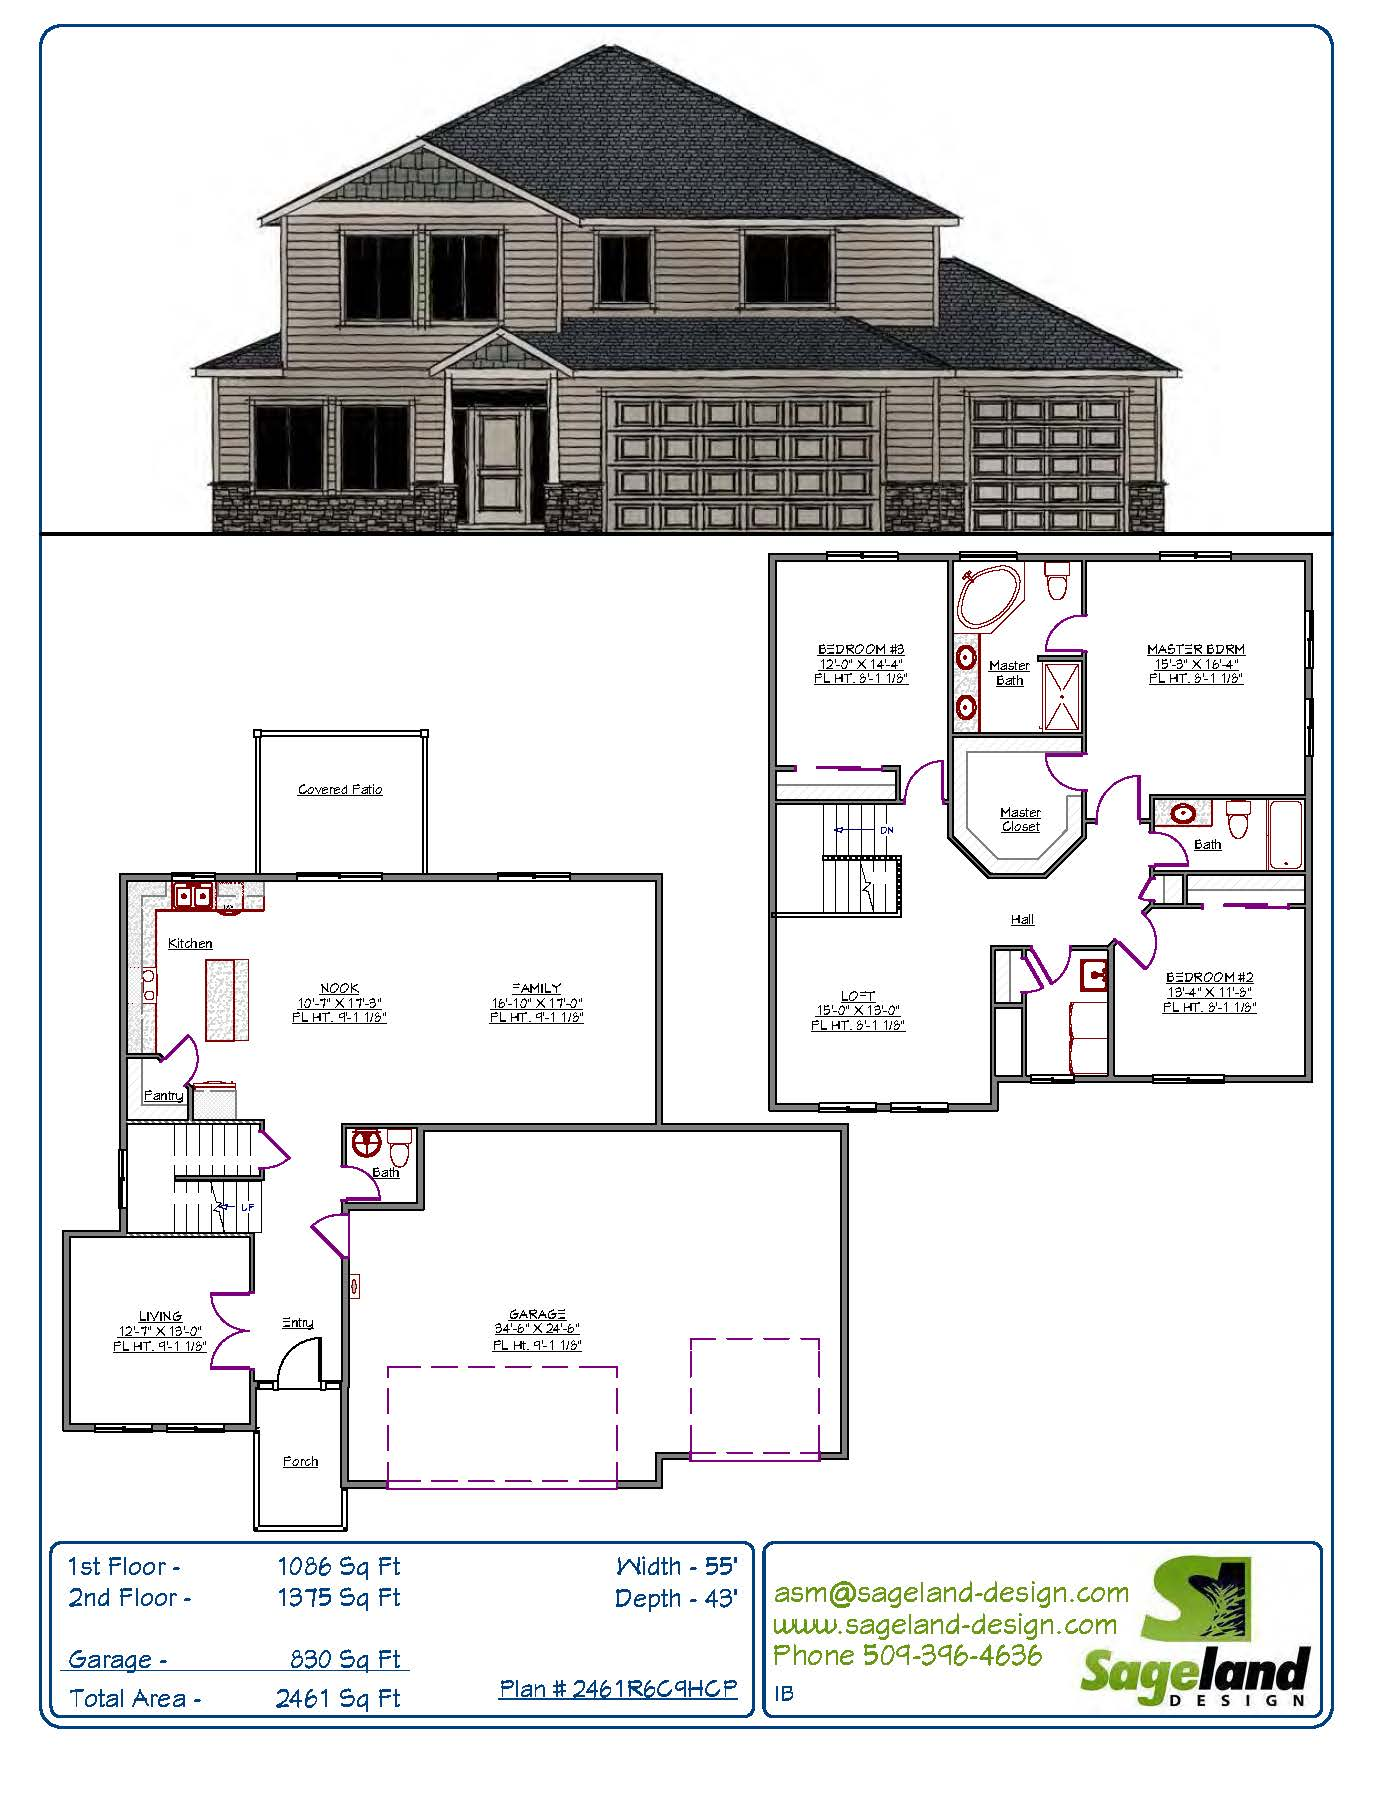 Delightful belmonte builders floor plans 4 belmonte for Belmonte builders floor plans